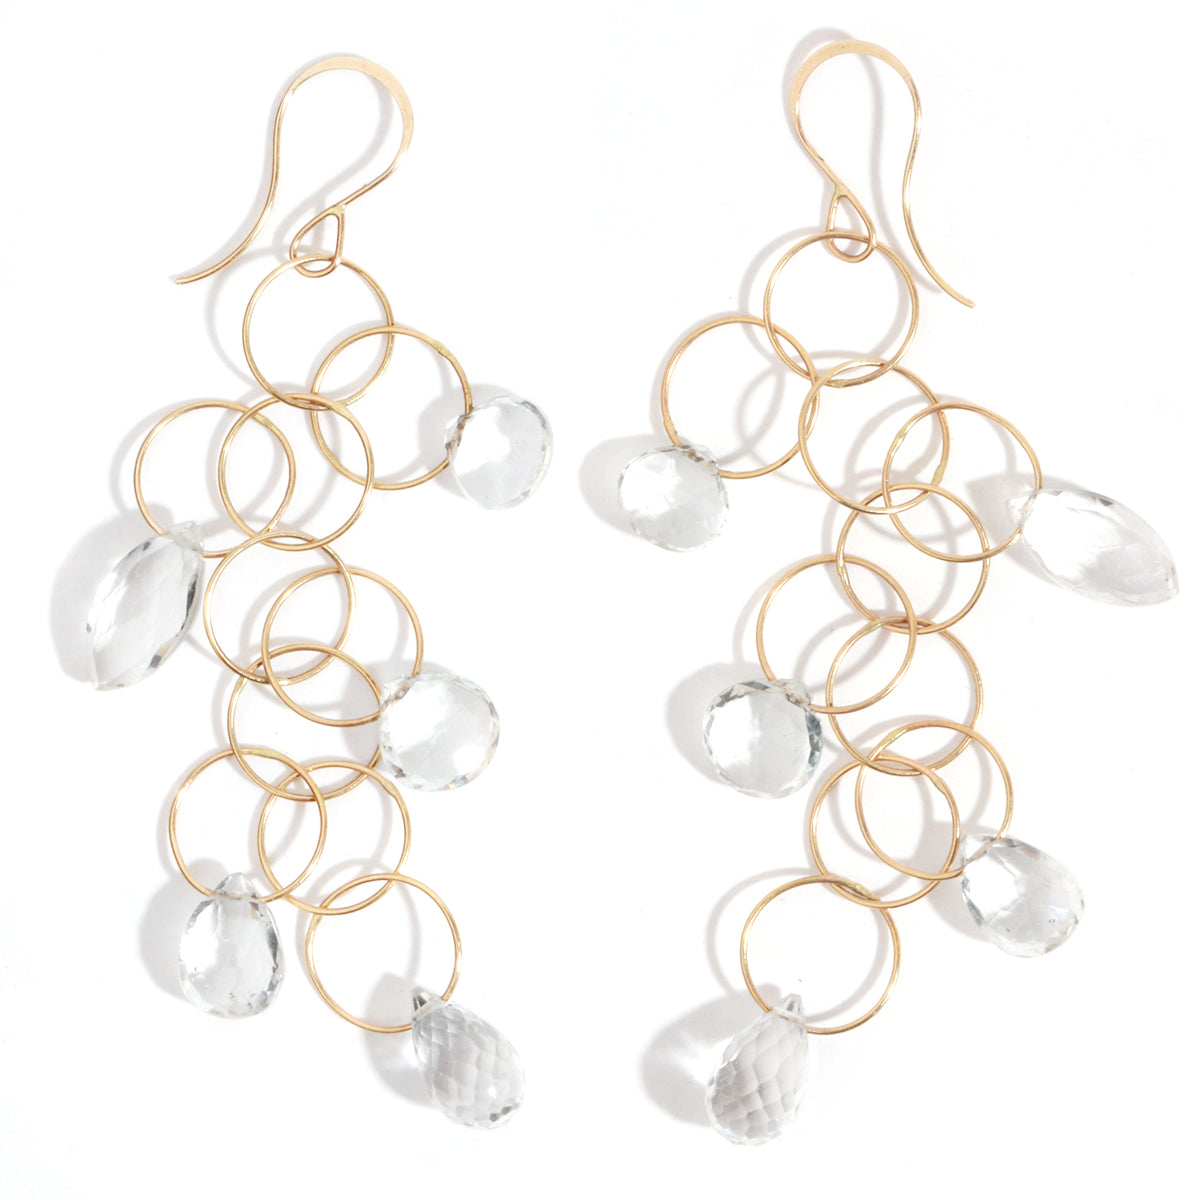 5 drop white topaz earrings - Melissa Joy Manning Jewelry